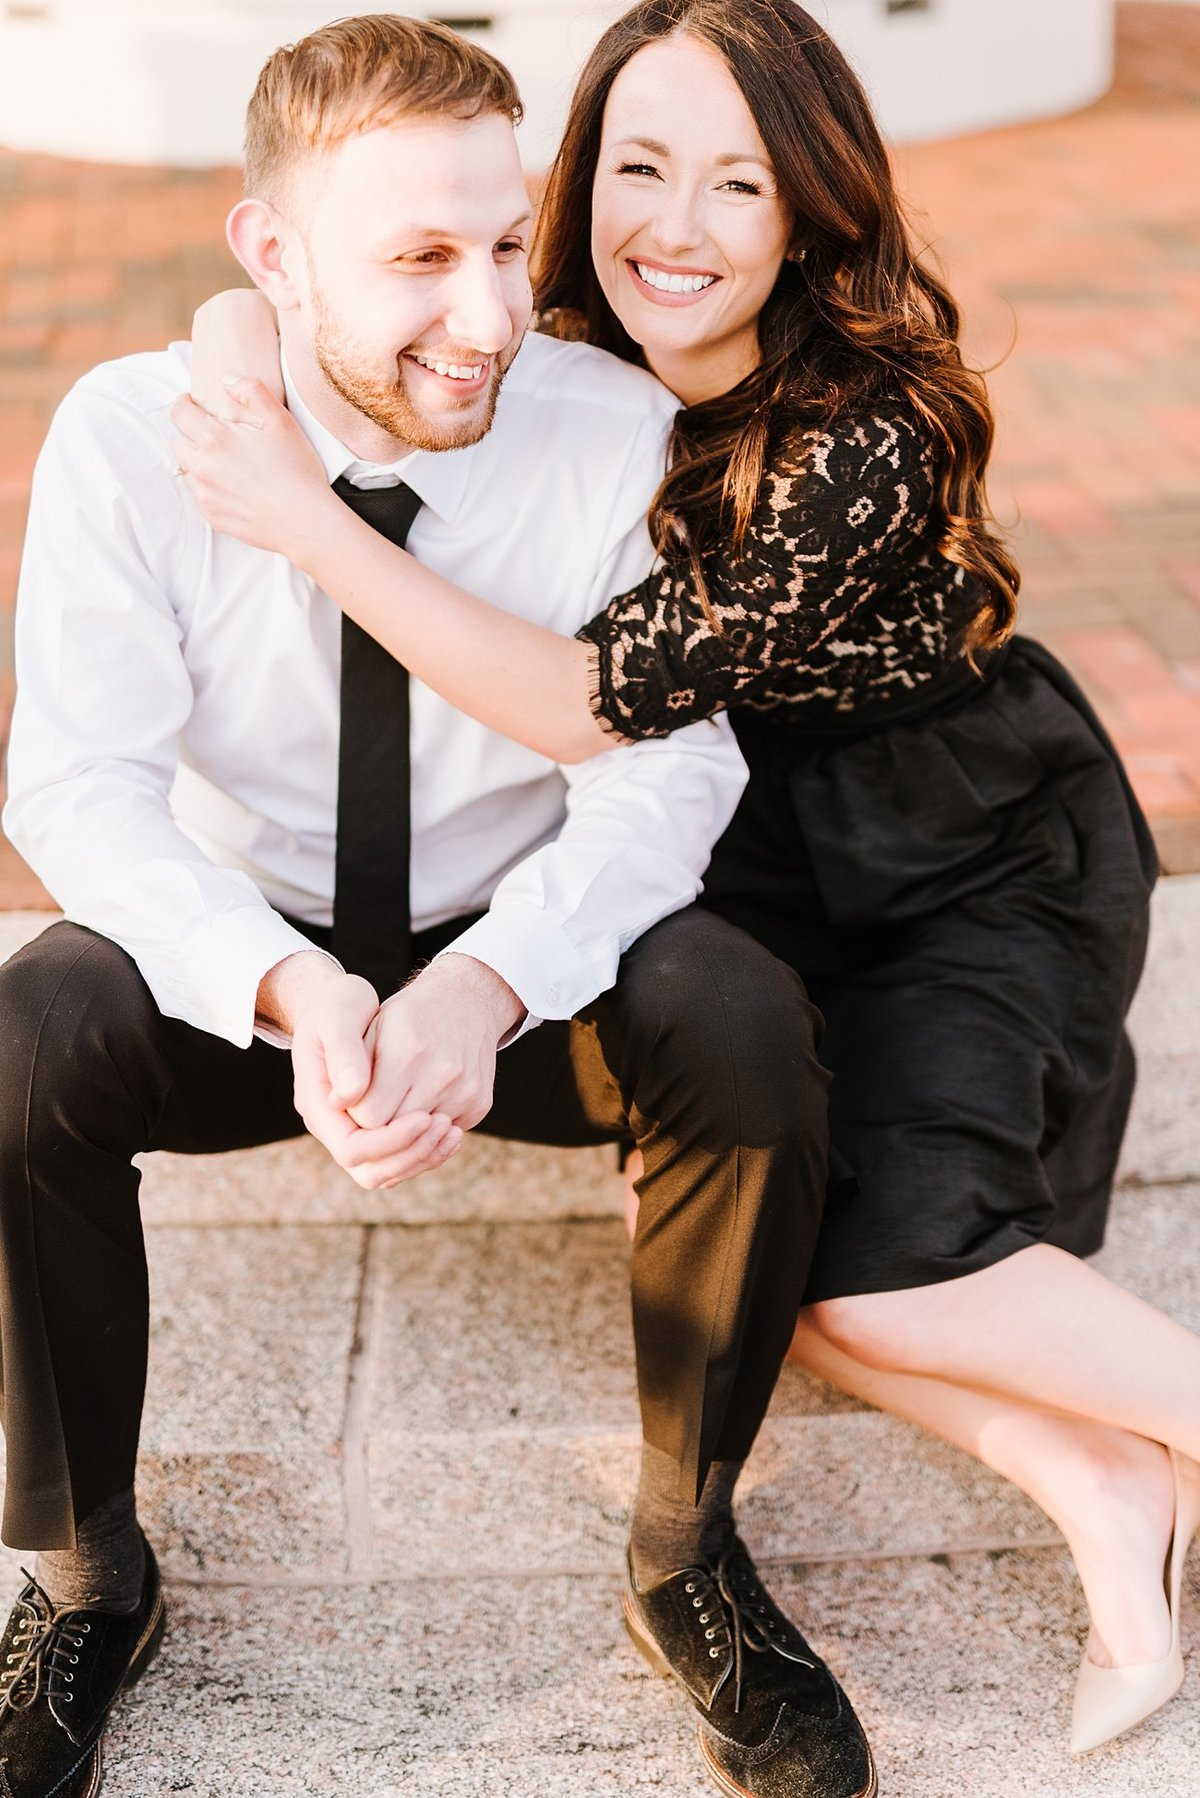 piers-park-engagement-session-boston-wedding-photographer-photo_0021